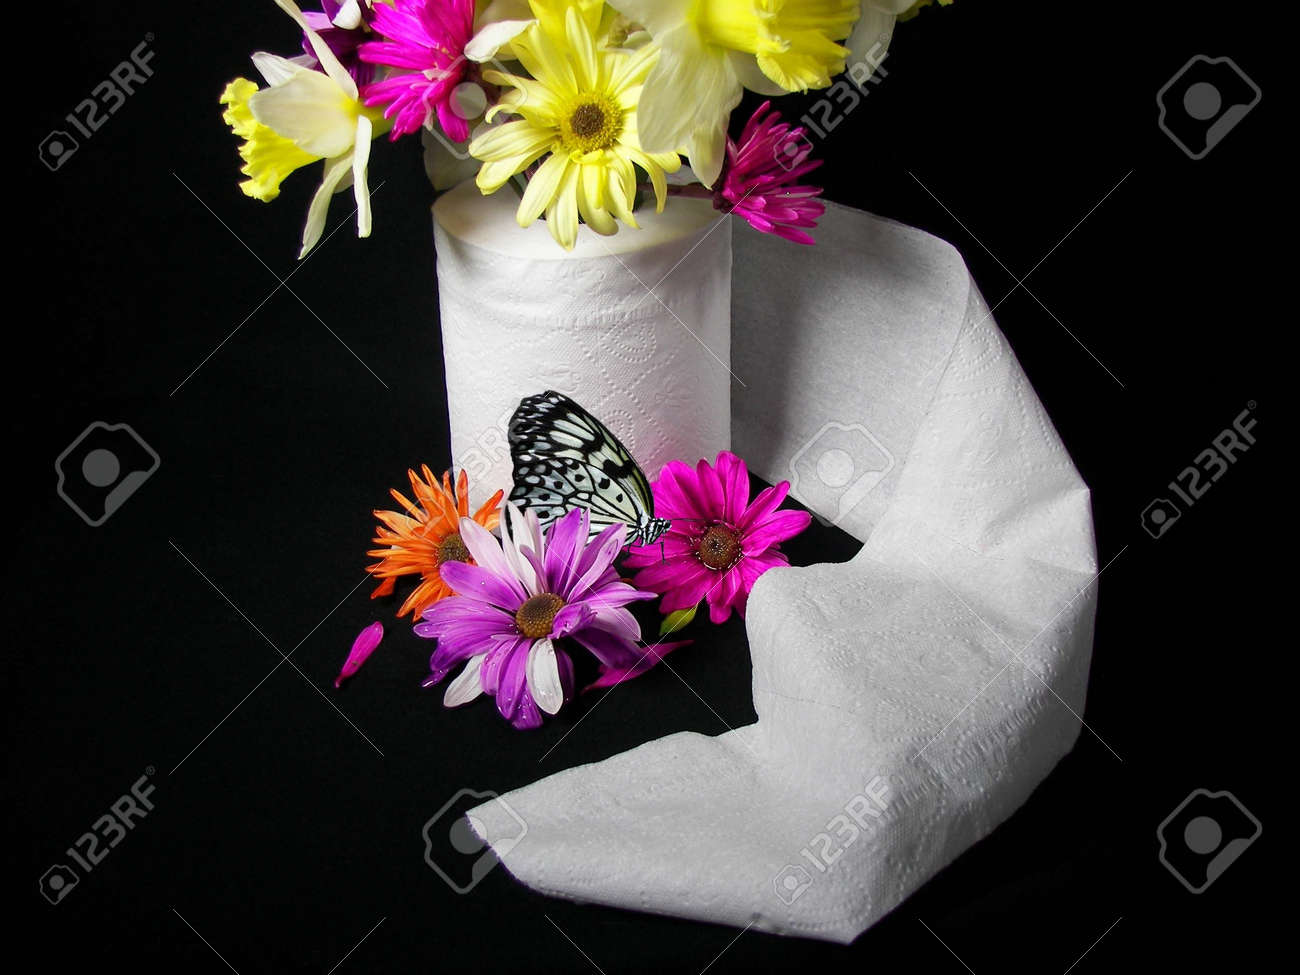 Flower bouquet in toilet paper with butterfly stock photo picture flower bouquet in toilet paper with butterfly stock photo 3101503 izmirmasajfo